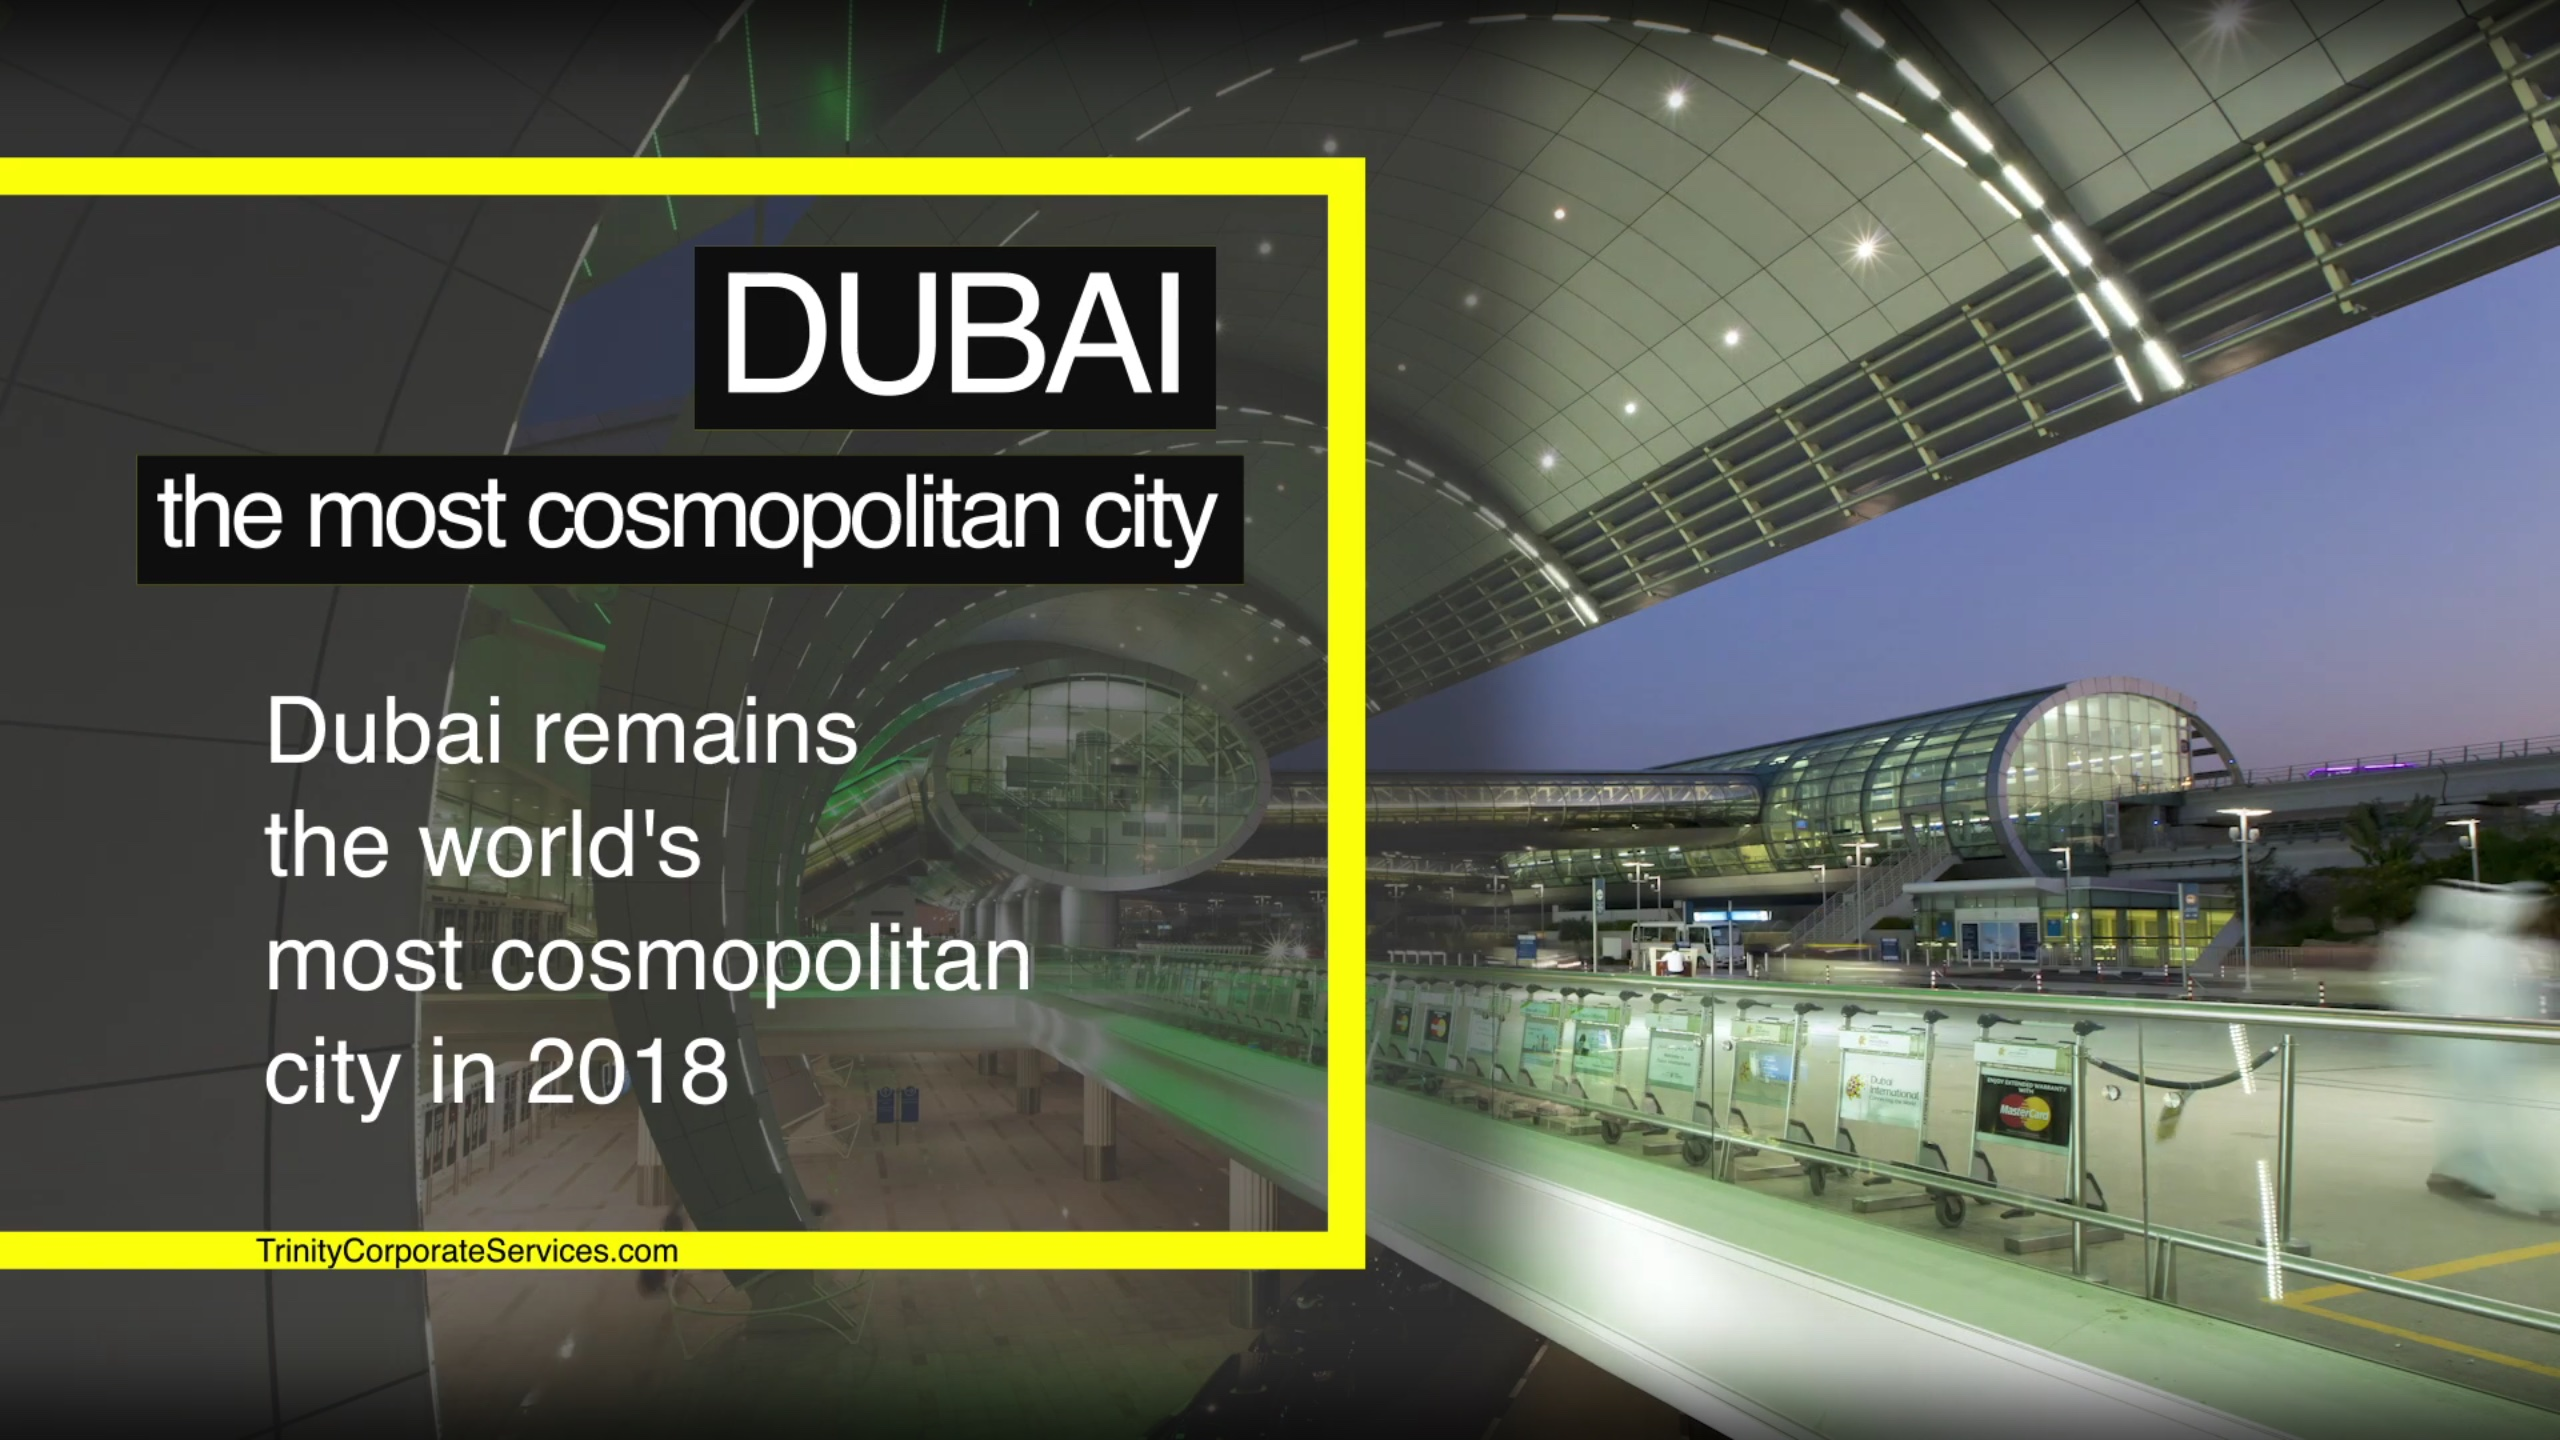 Dubai - The most cosmopolitan city